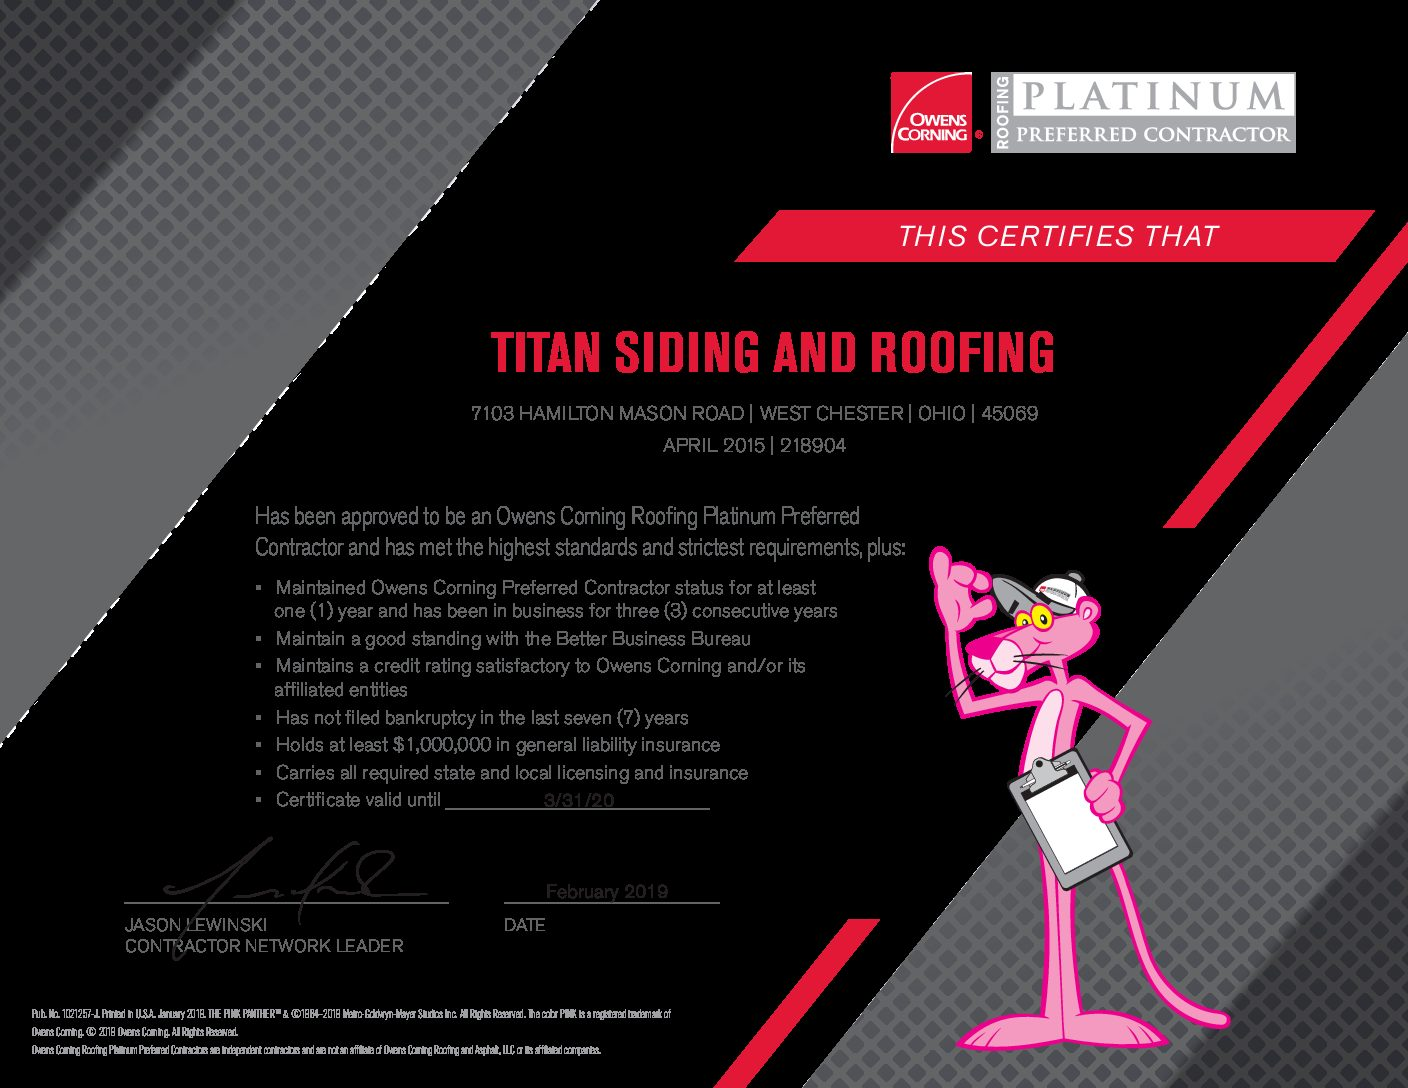 Titan Siding and Roofing Partnership